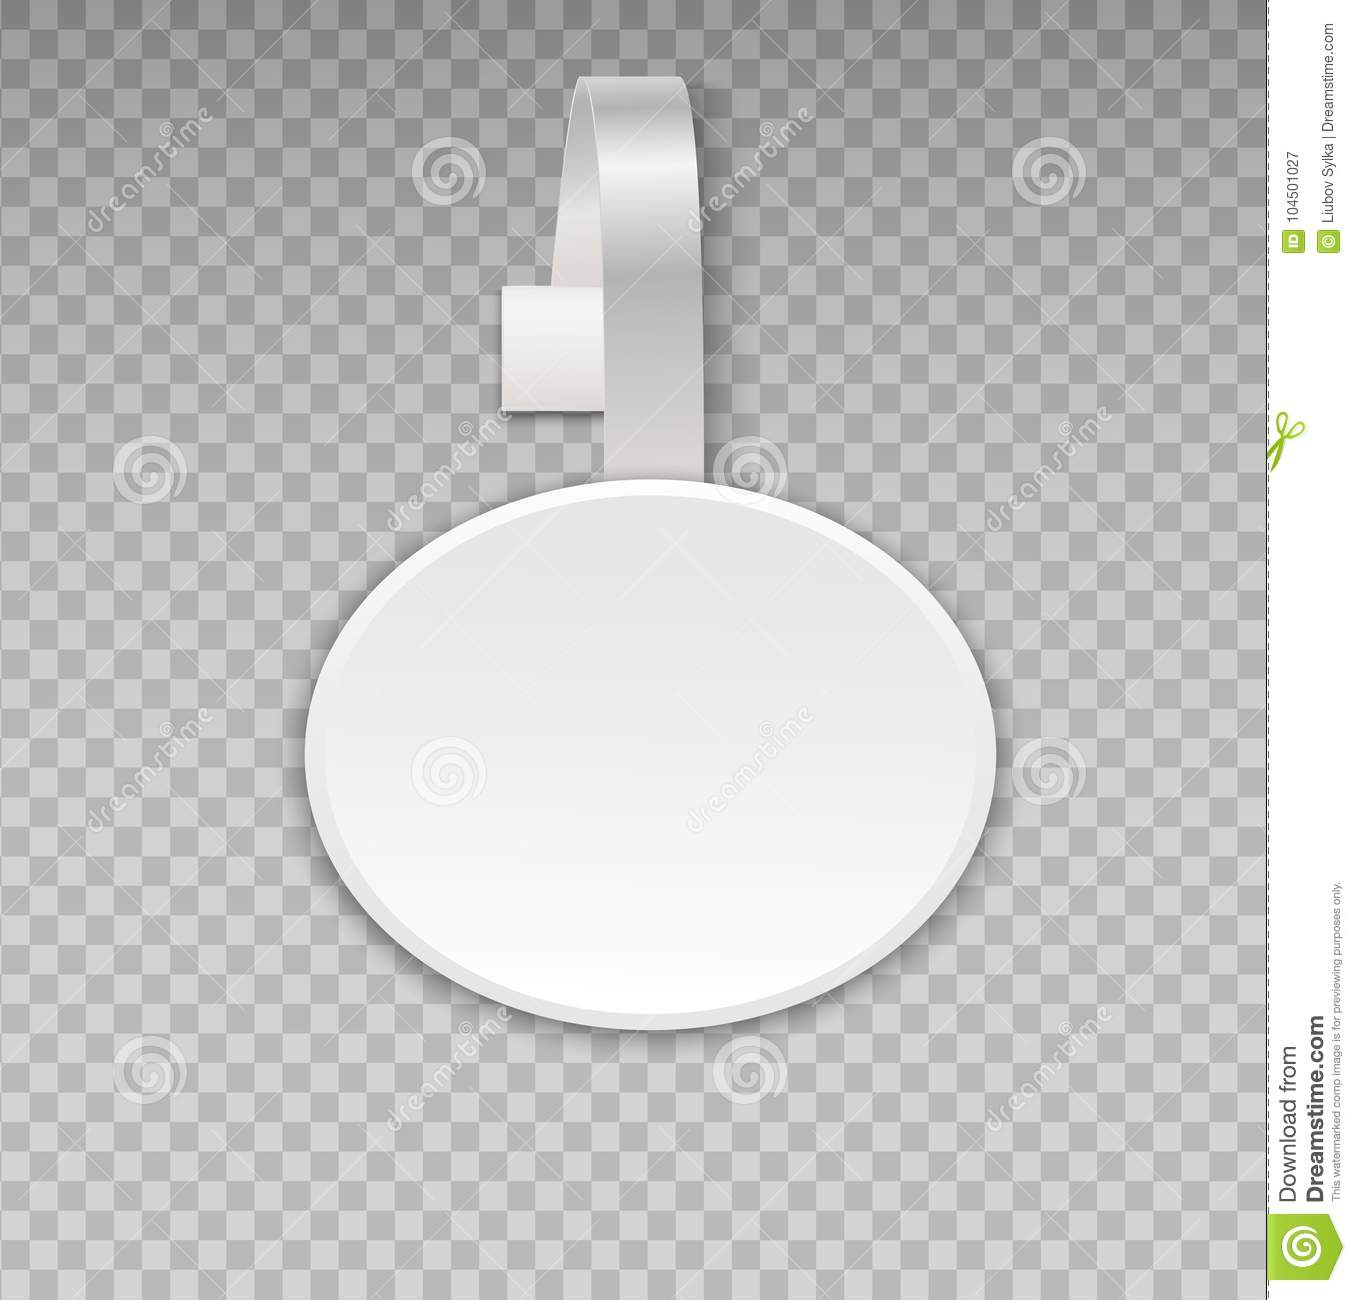 Wobbler mockup with transparent background. Vector blank white round shape paper plastic advertising shop price or sales point tag